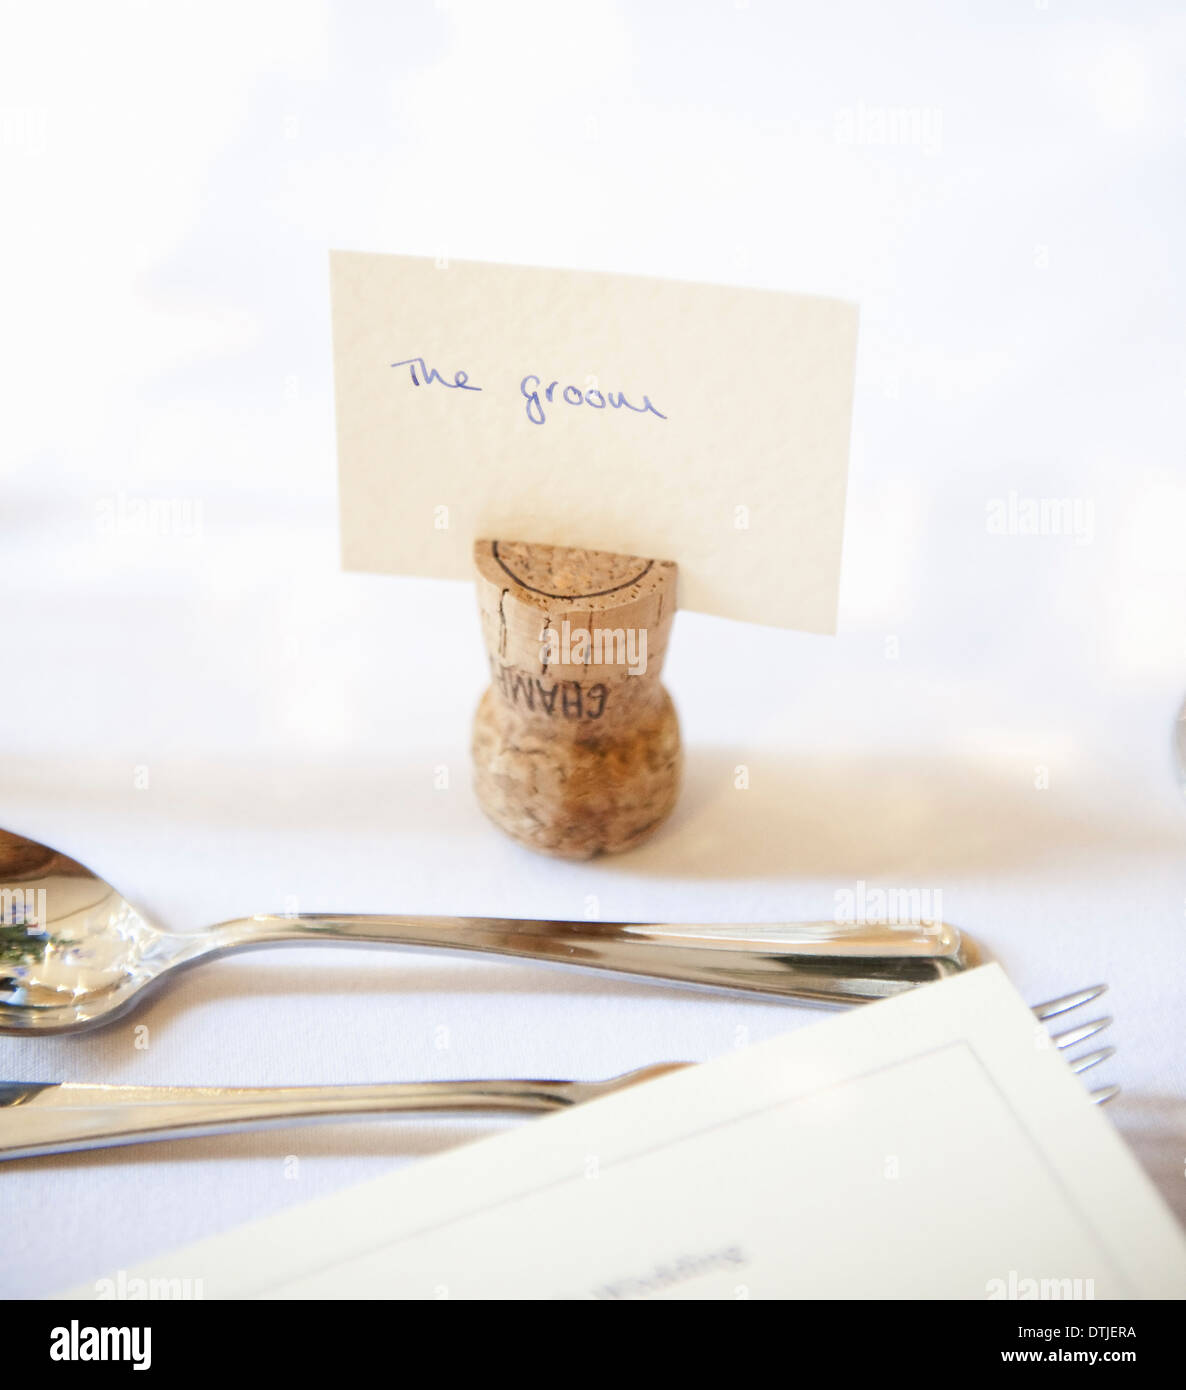 Top table at a wedding banquet An upside down cork with name tag for the groom Silver fork and spoon England - Stock Image